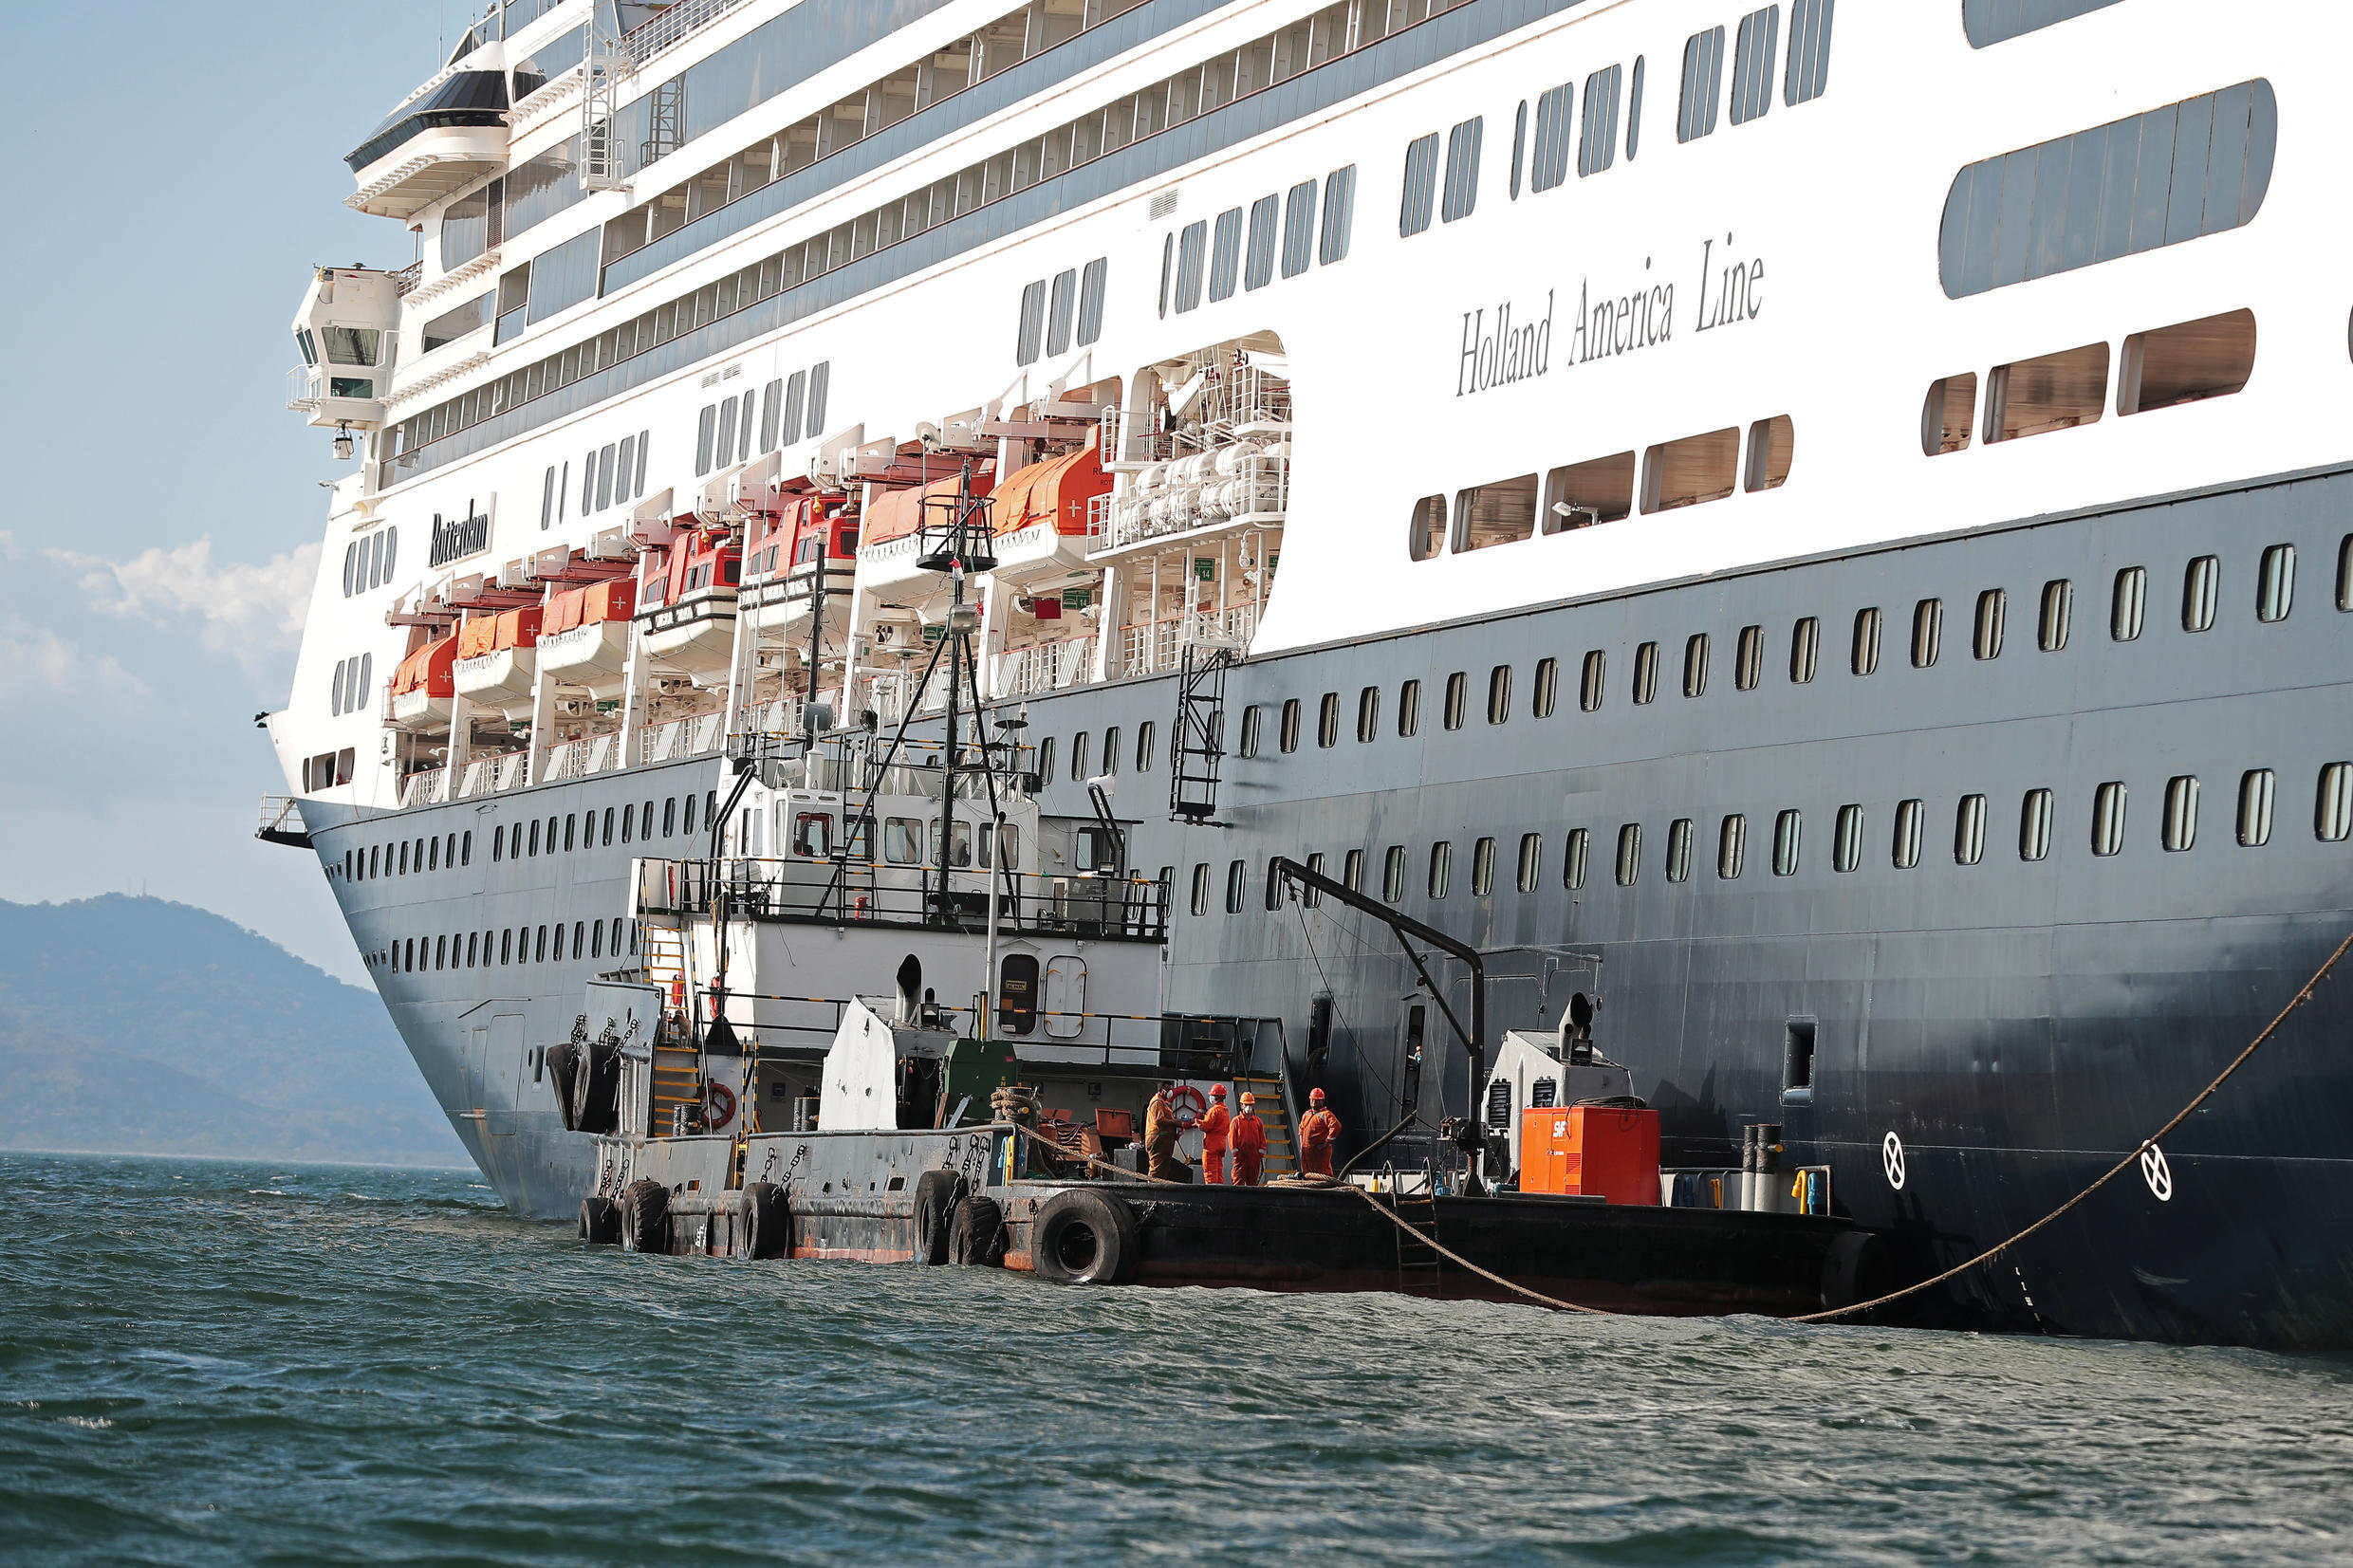 An offshore supply vessel is seen next to the cruise ship MS Rotherdam, which brought supplies and Covid-19 test kits to the MS Zaandam, where four passengers died, pictured off the coast of Panama City, Panama March 27, 2020.